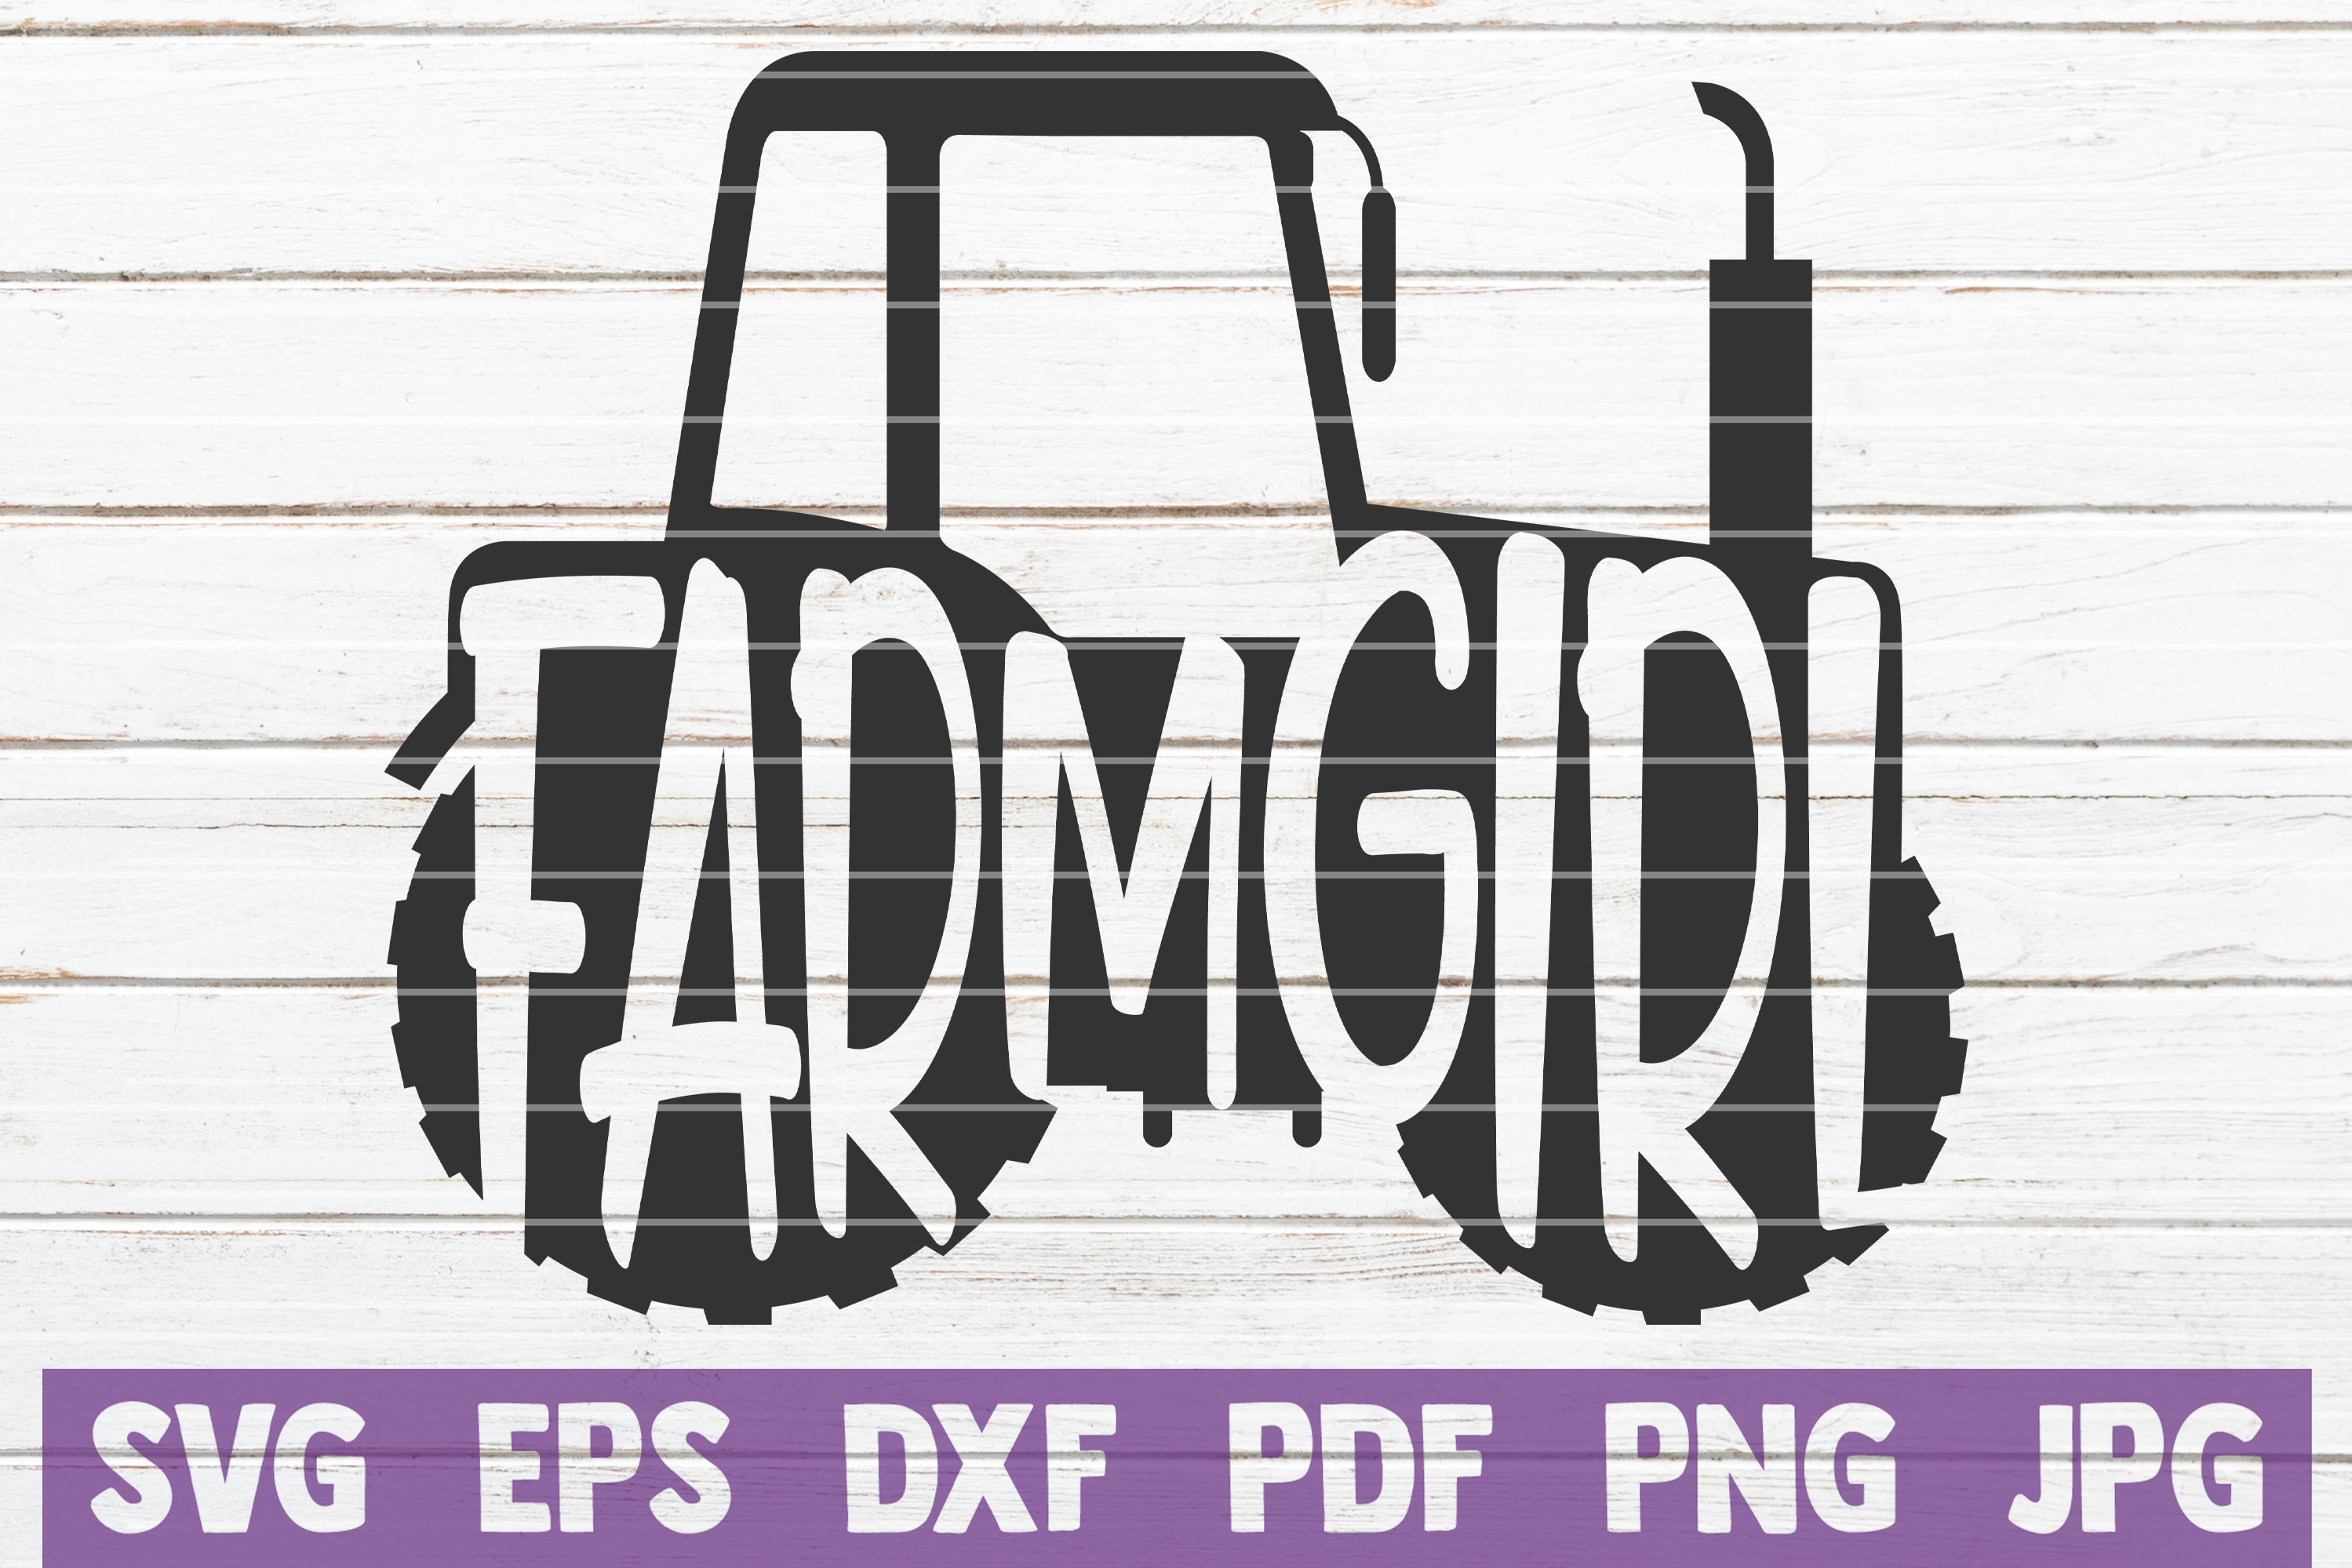 Download Free Farm Girl Svg Cut File Graphic By Mintymarshmallows Creative for Cricut Explore, Silhouette and other cutting machines.